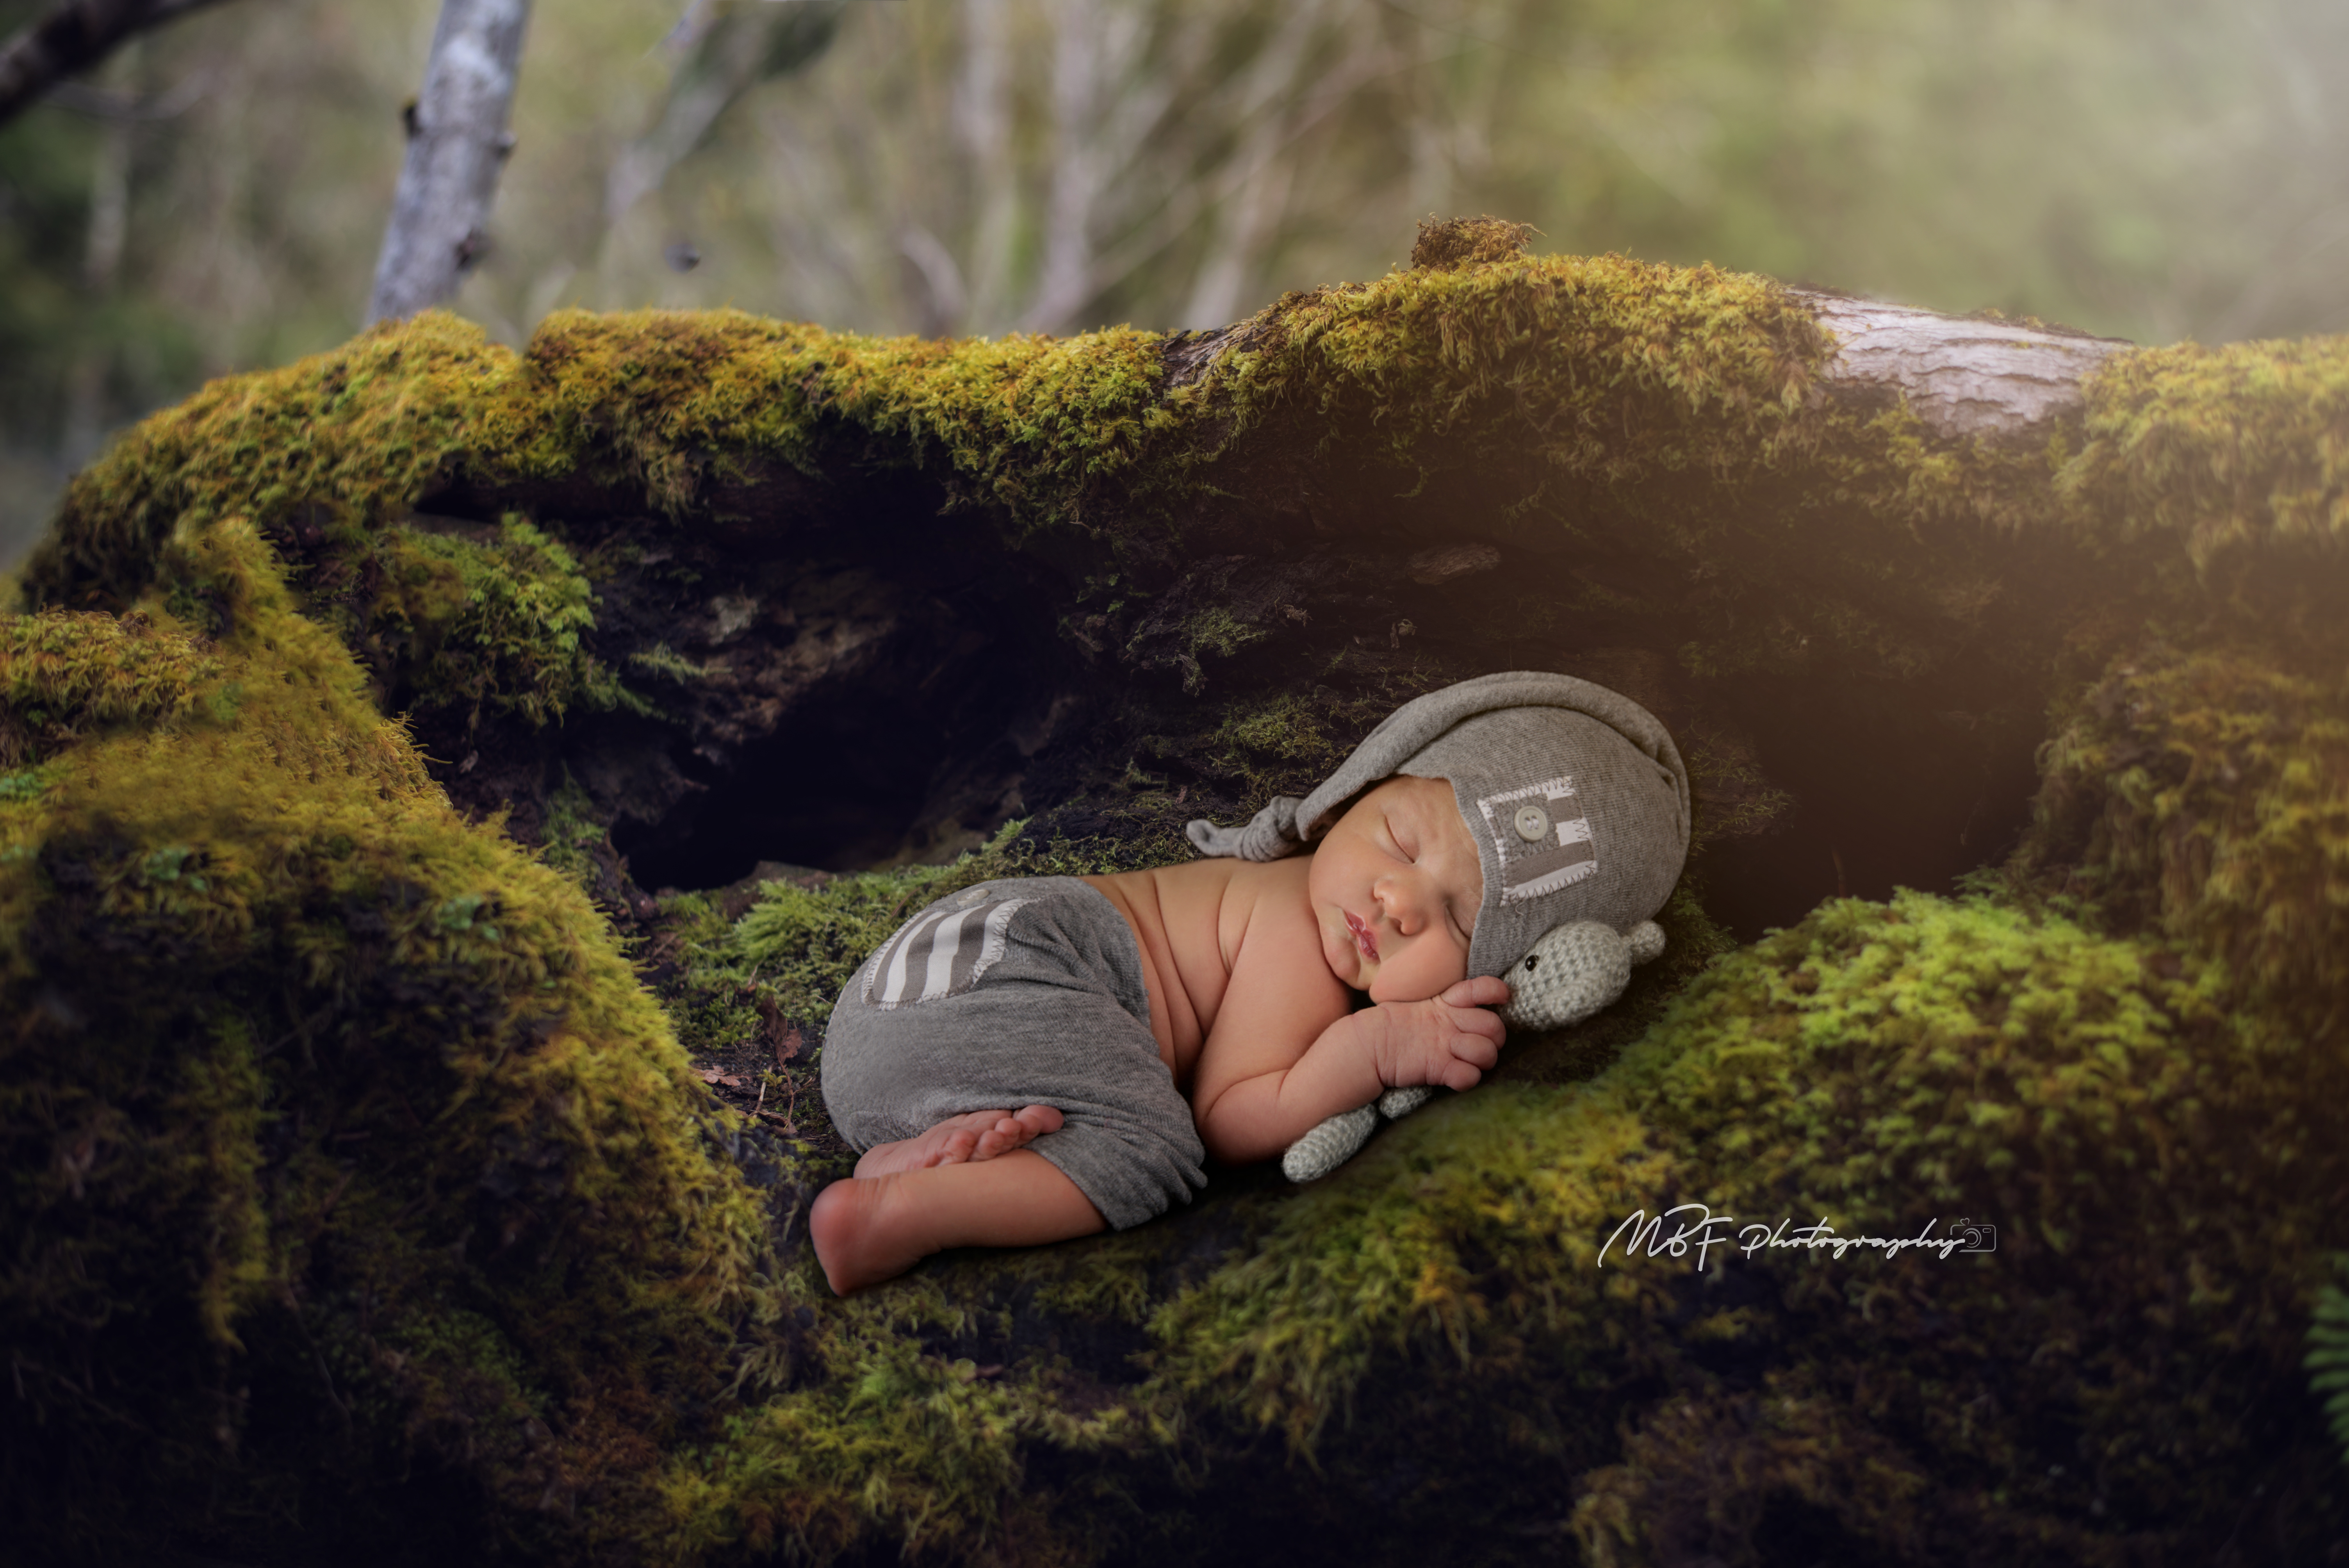 Las Vegas Newborn photographer, MBF Photography